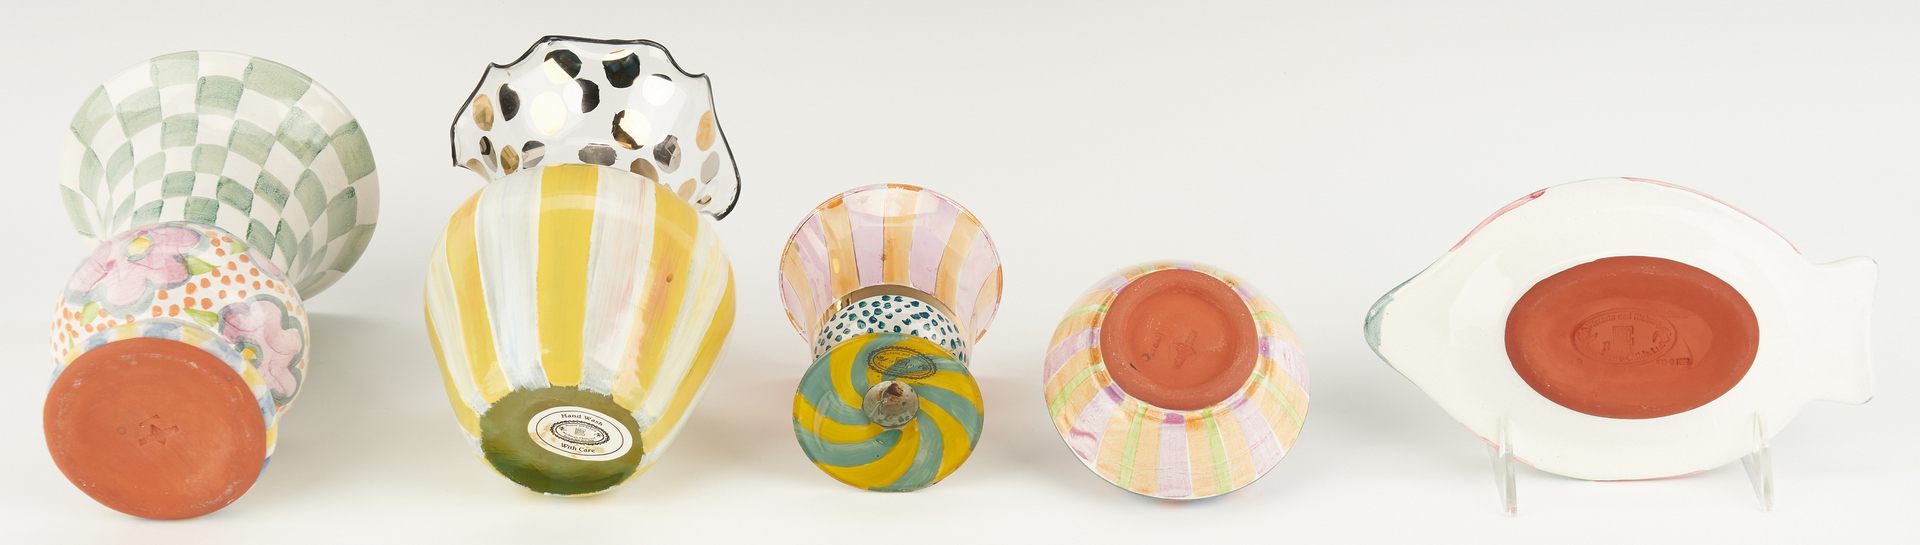 Lot 895: 16 Mackenzie-Childs Ceramic, Glass & Other Items